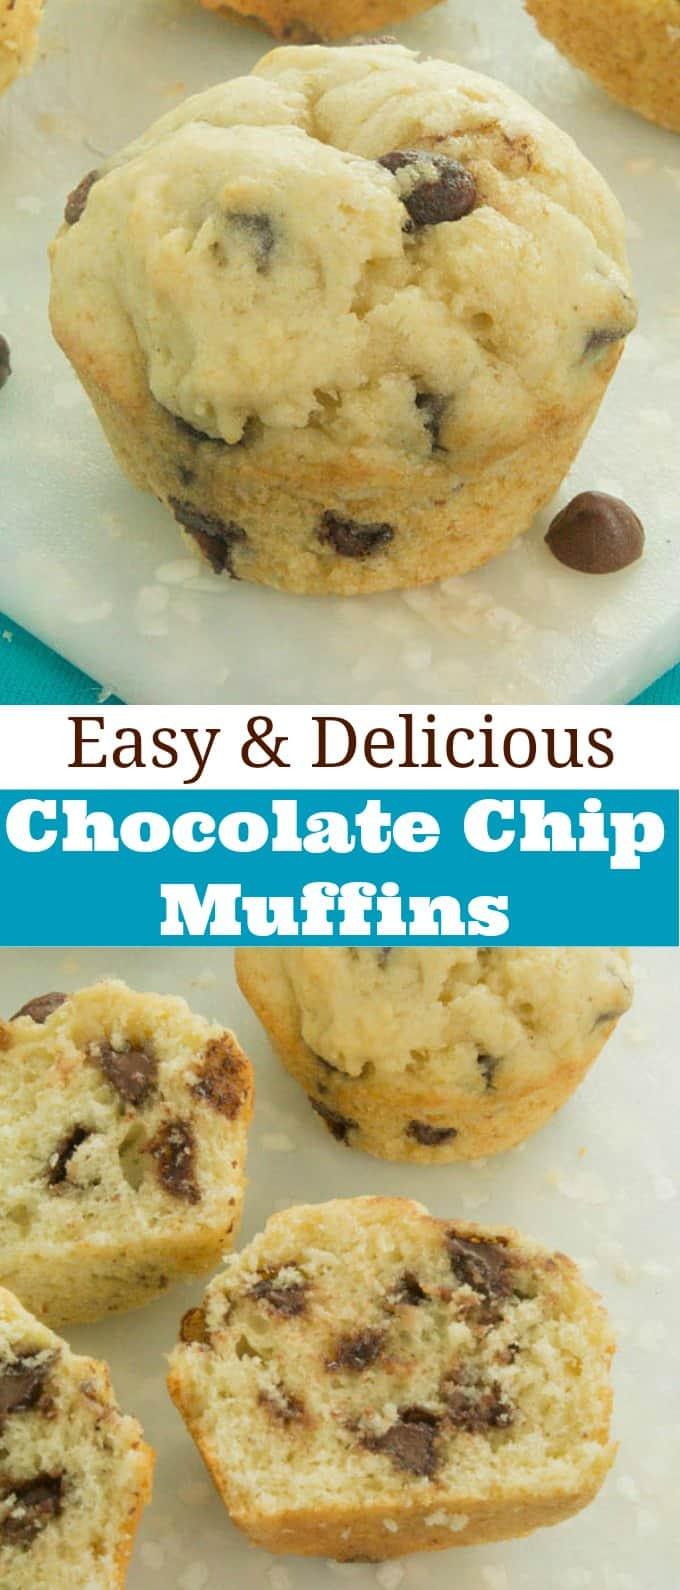 ​Easy Chocolate Chip Muffins Recipe - So moist and delicious! ​